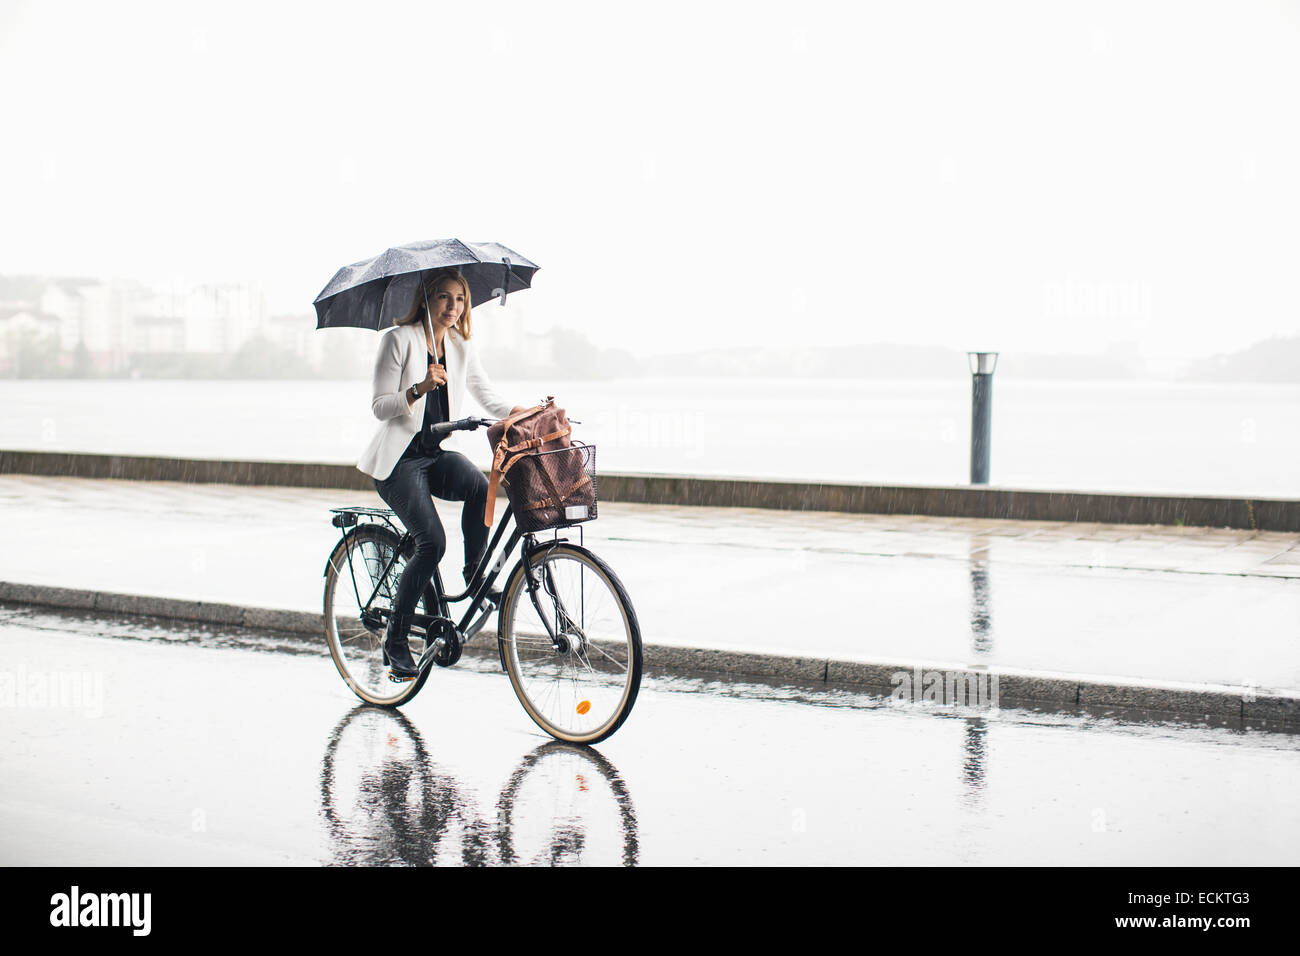 Full length of businesswoman riding bicycle on wet city street during rainy season - Stock Image